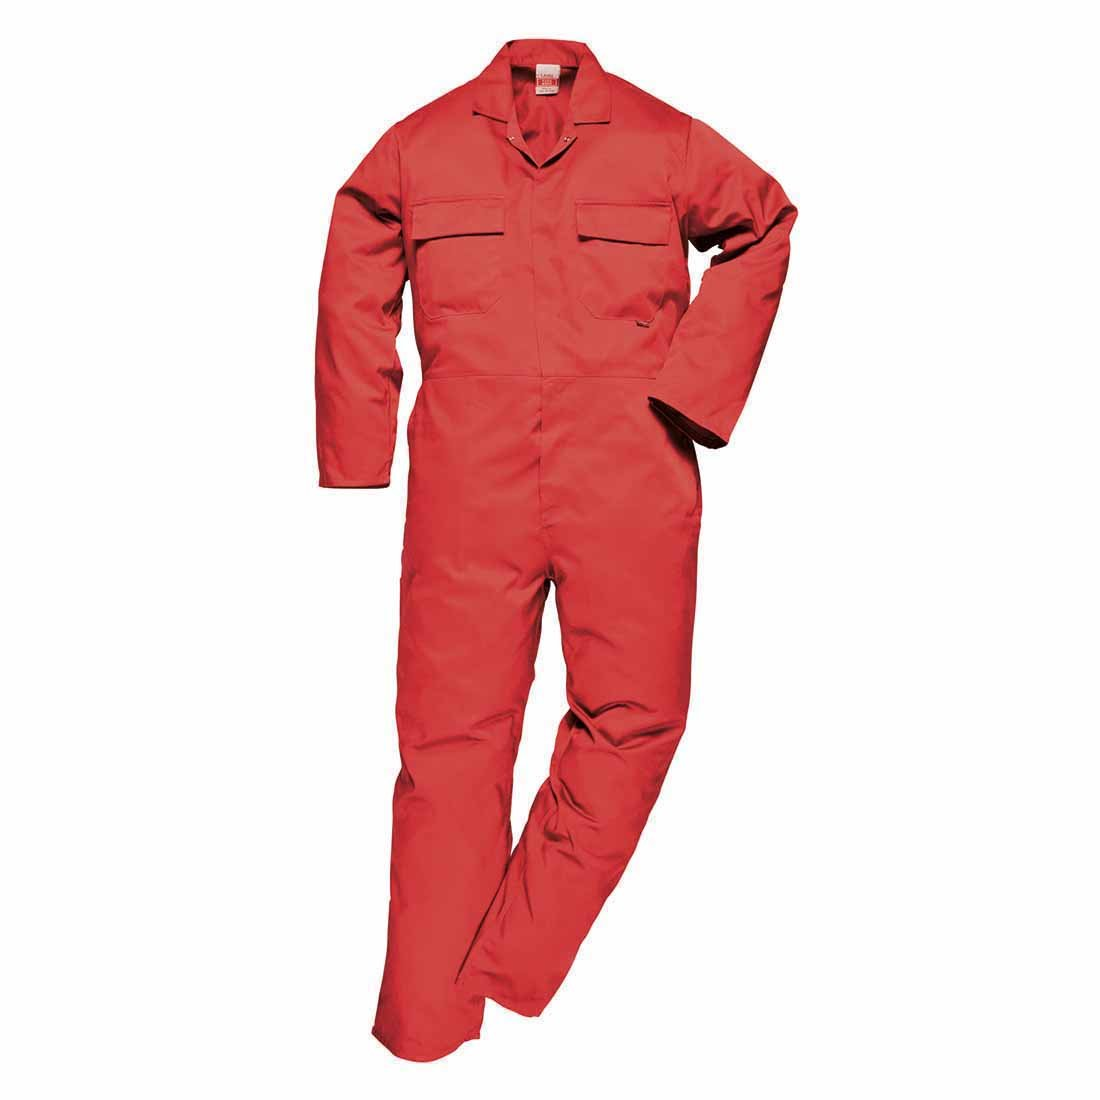 Portwest Men's Euro Work Boilersuit Coverall Overall Stud Front Elastic Waist